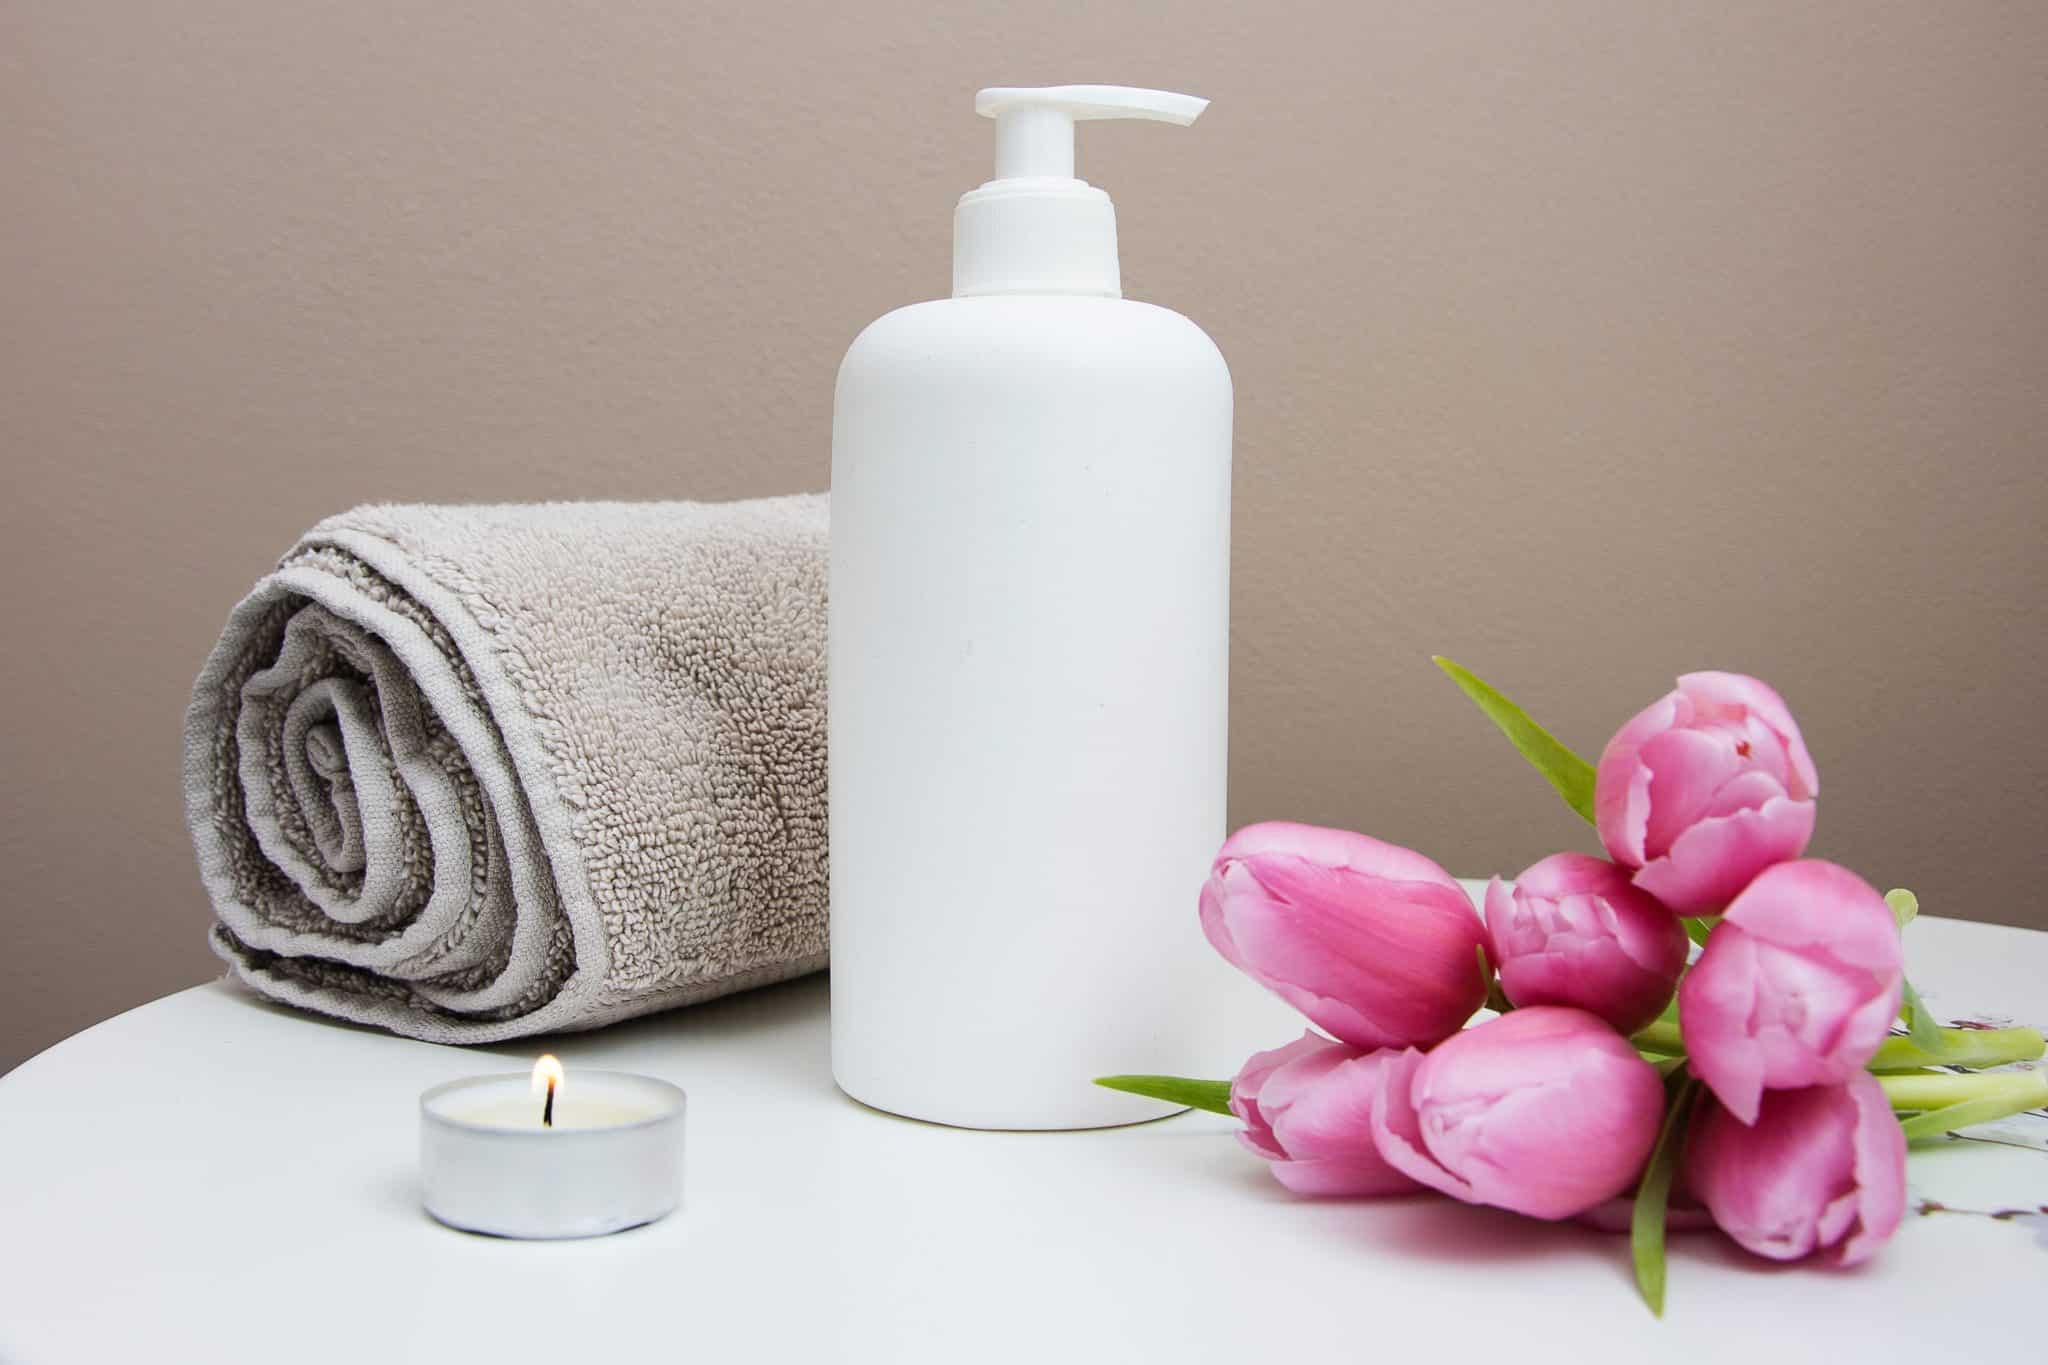 Spa table with rolled towel, lotion, candle and flower